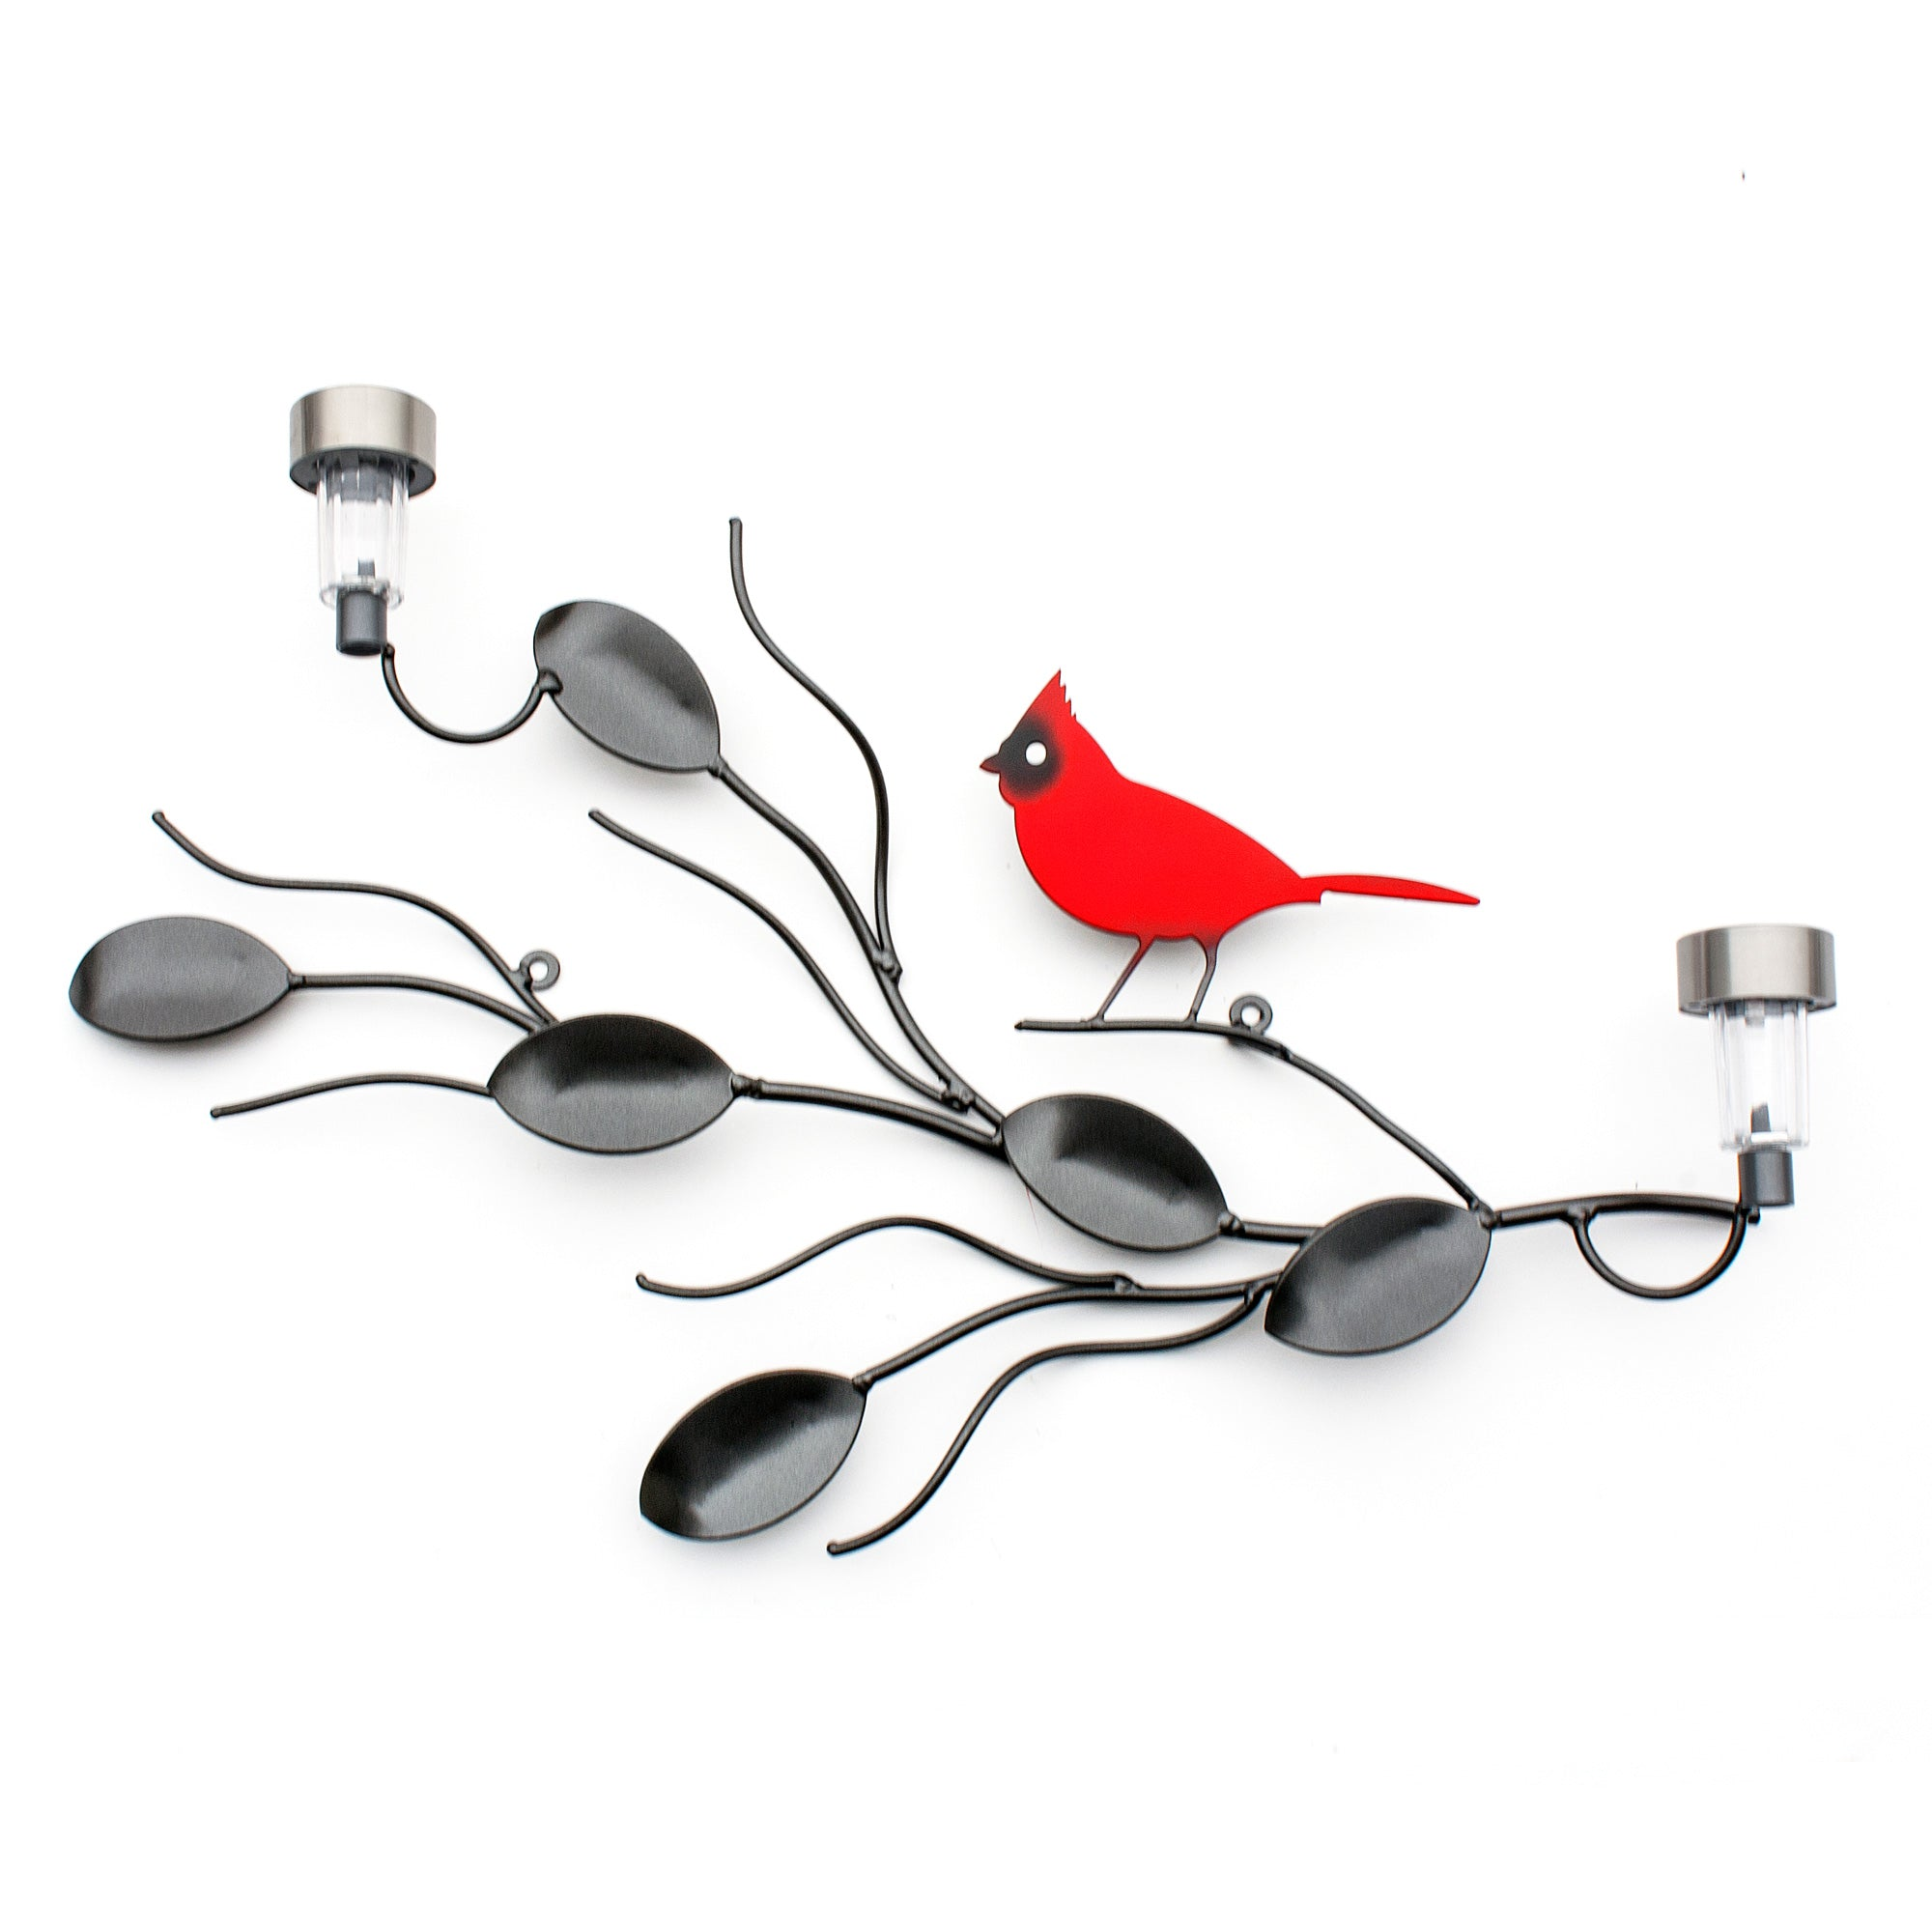 Metal Art of Red Cardinal and vines for Home Wall Art Garden Decor